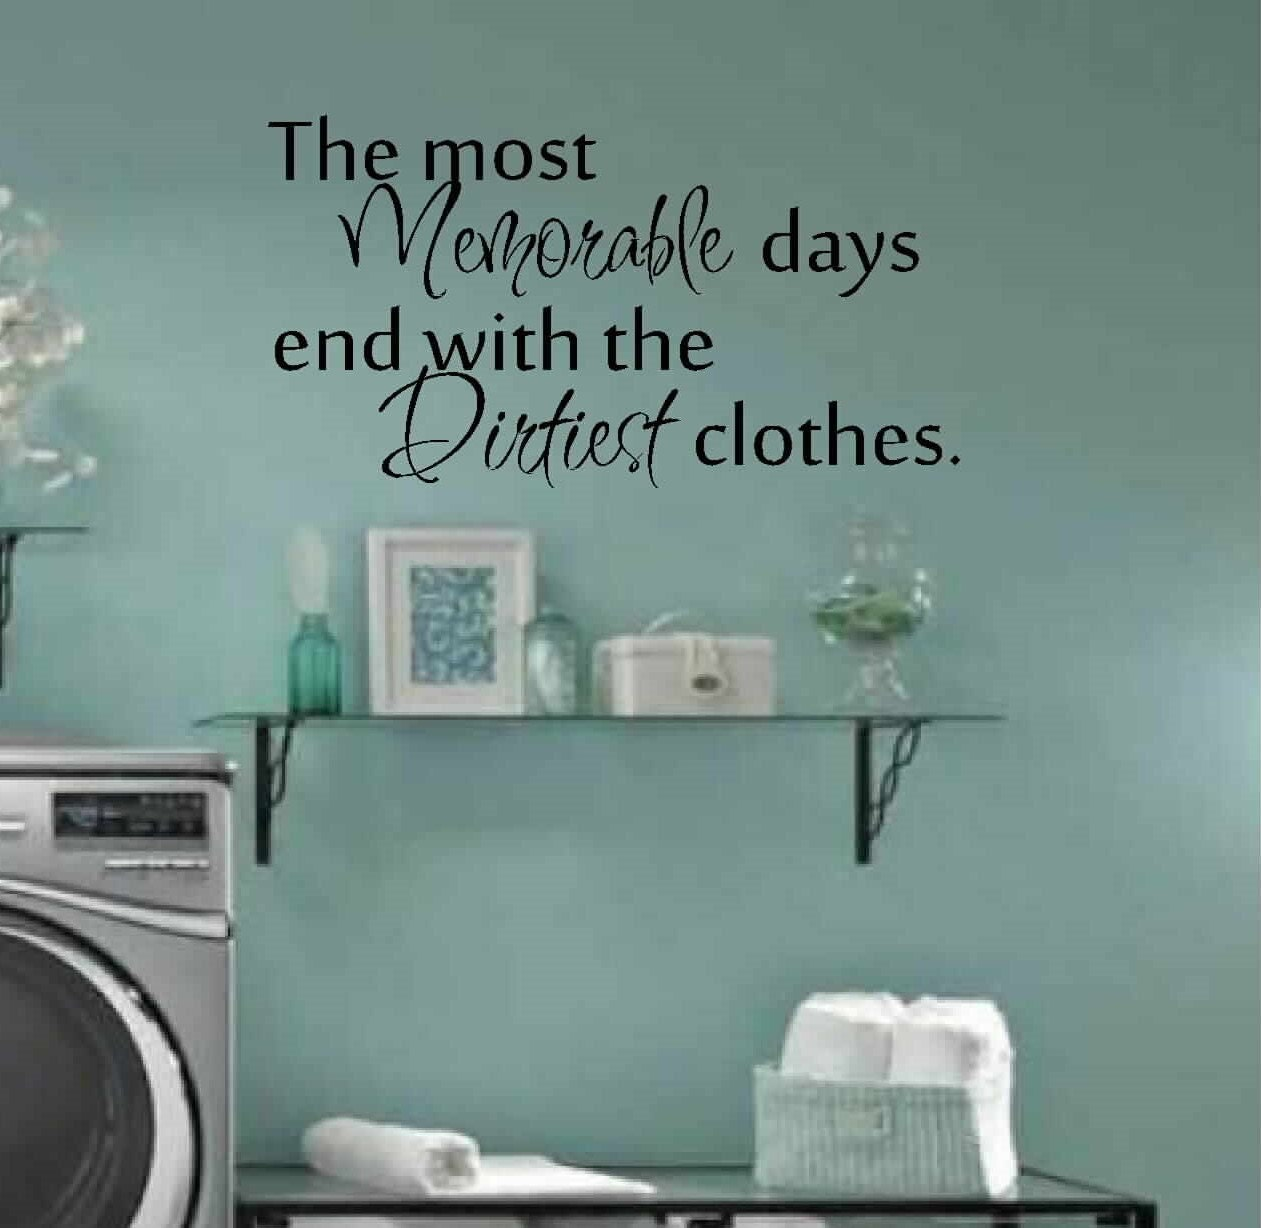 Laundry Room Vinyl Wall Art Laundry Room Decor Wall Art Matt Vinyl Decal Laundry